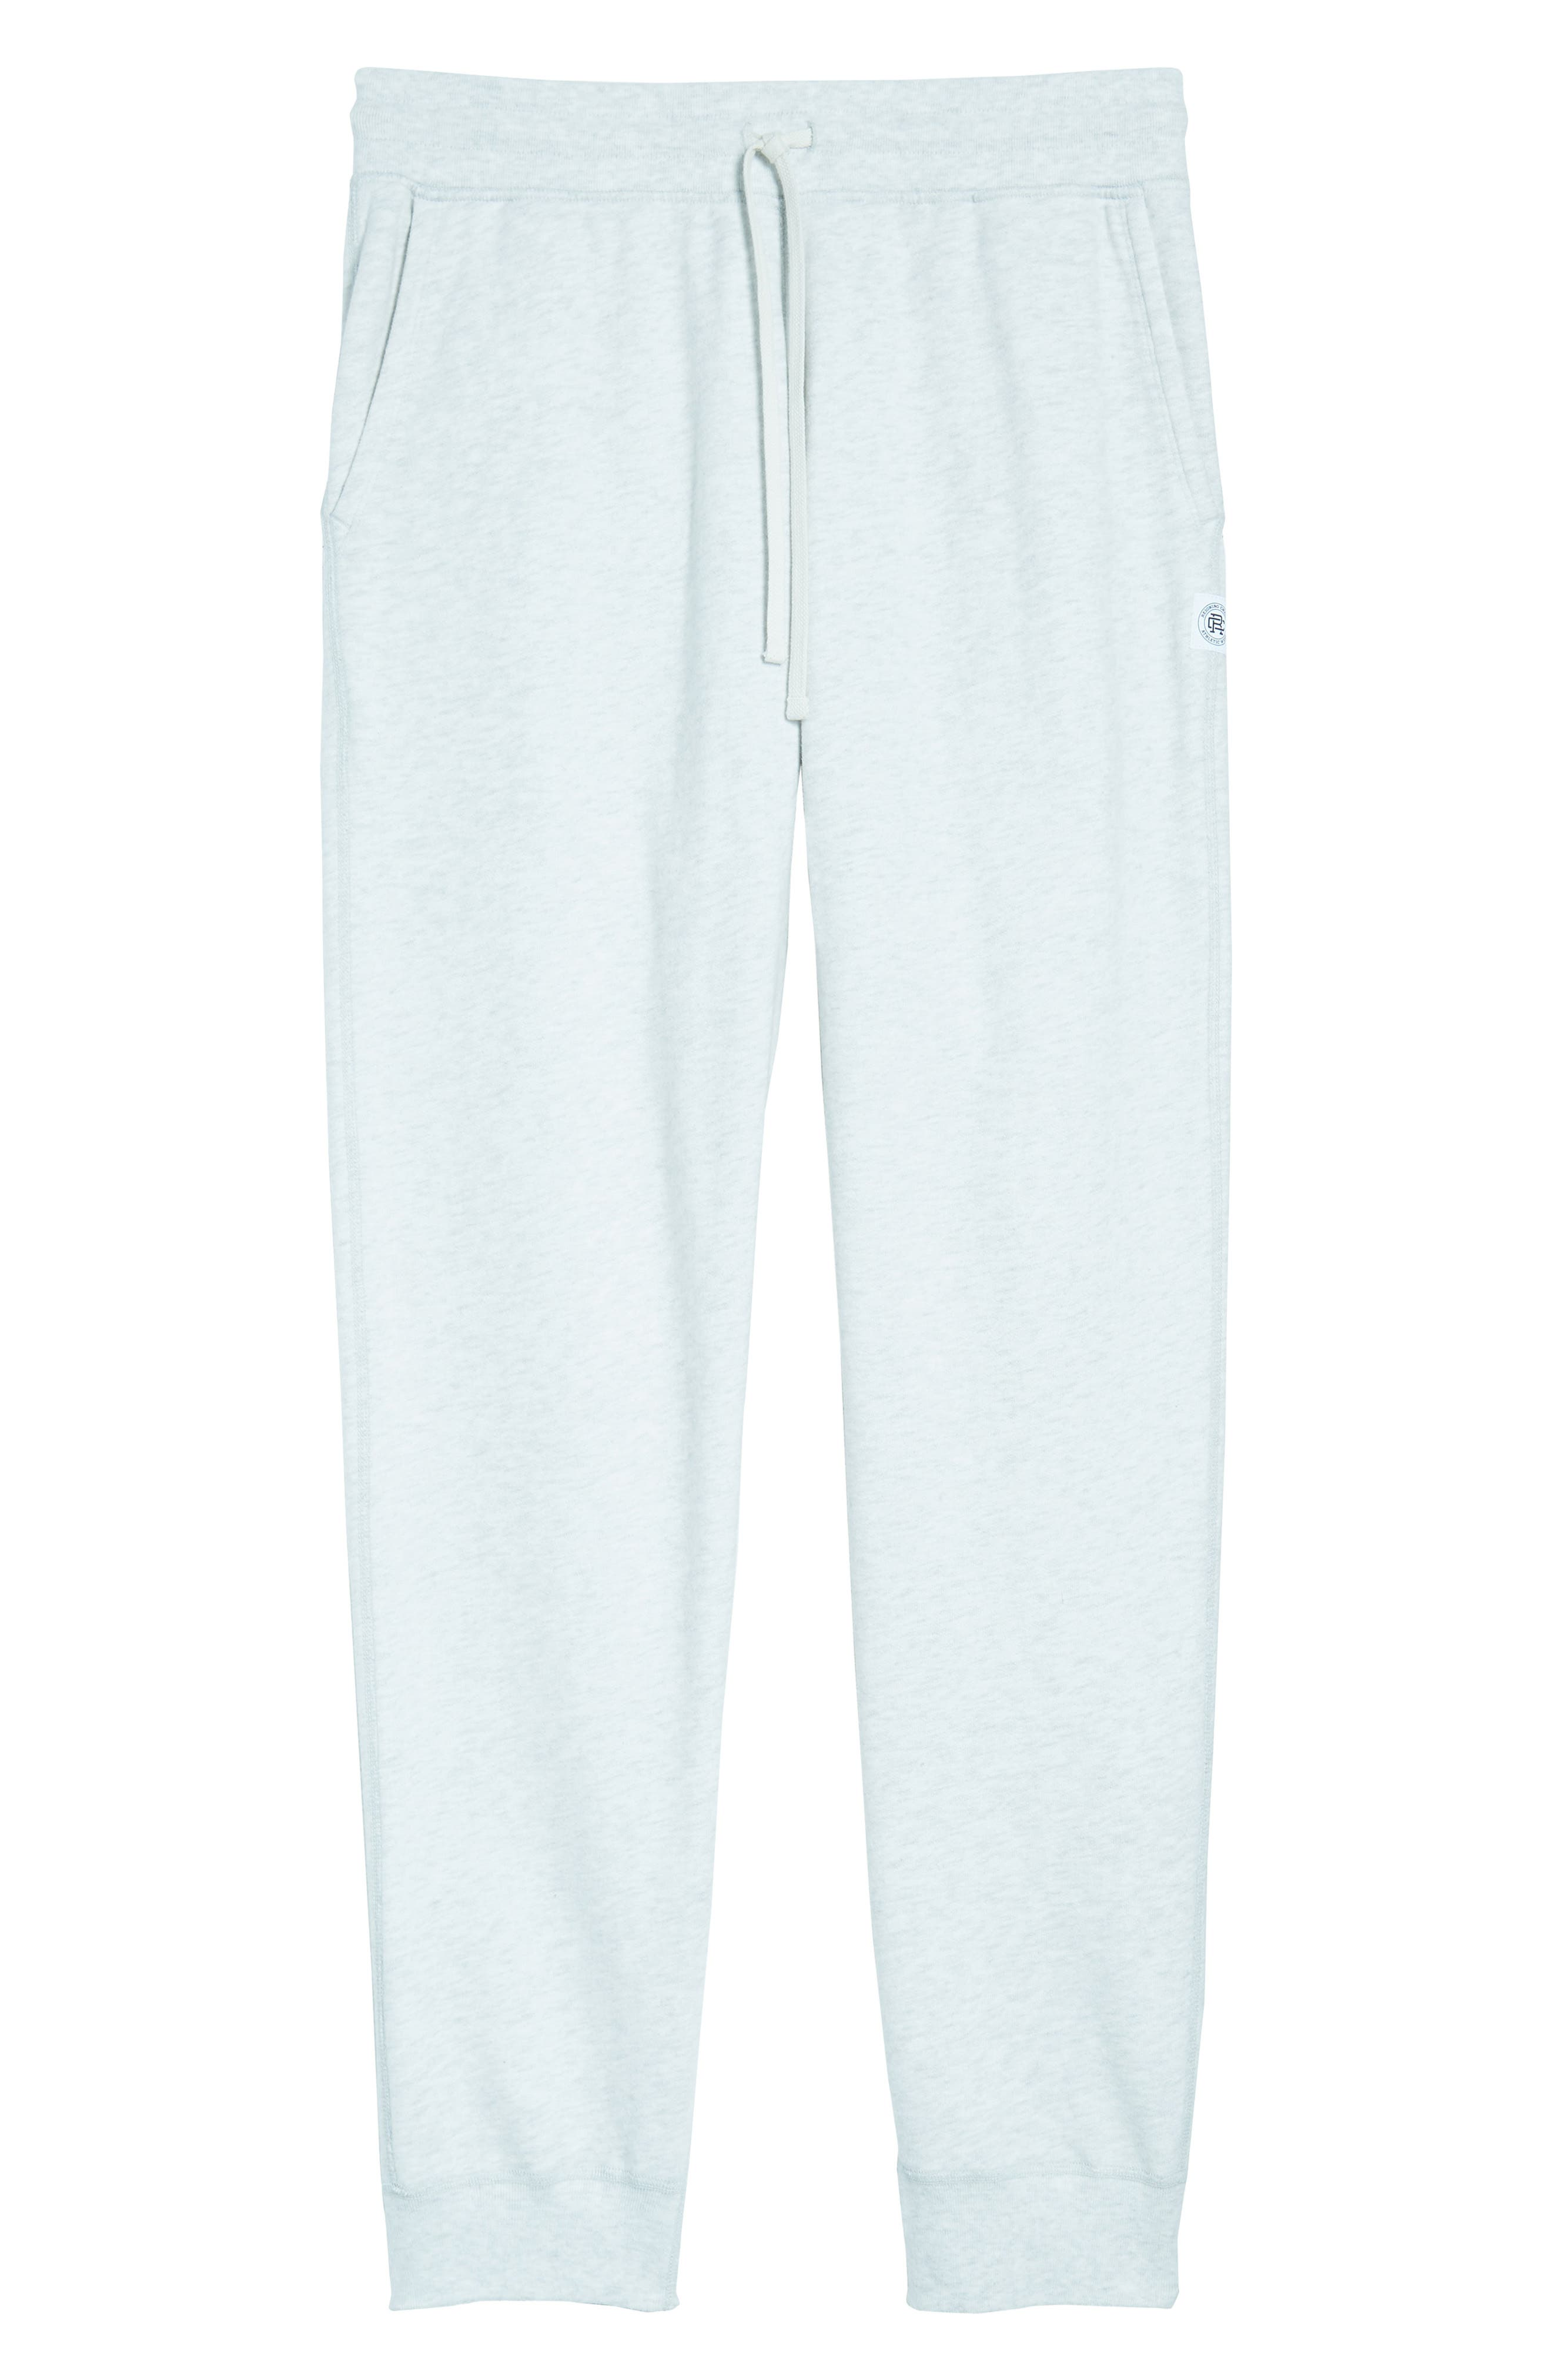 Slim Fit Sweatpants,                             Alternate thumbnail 6, color,                             Heather Ash